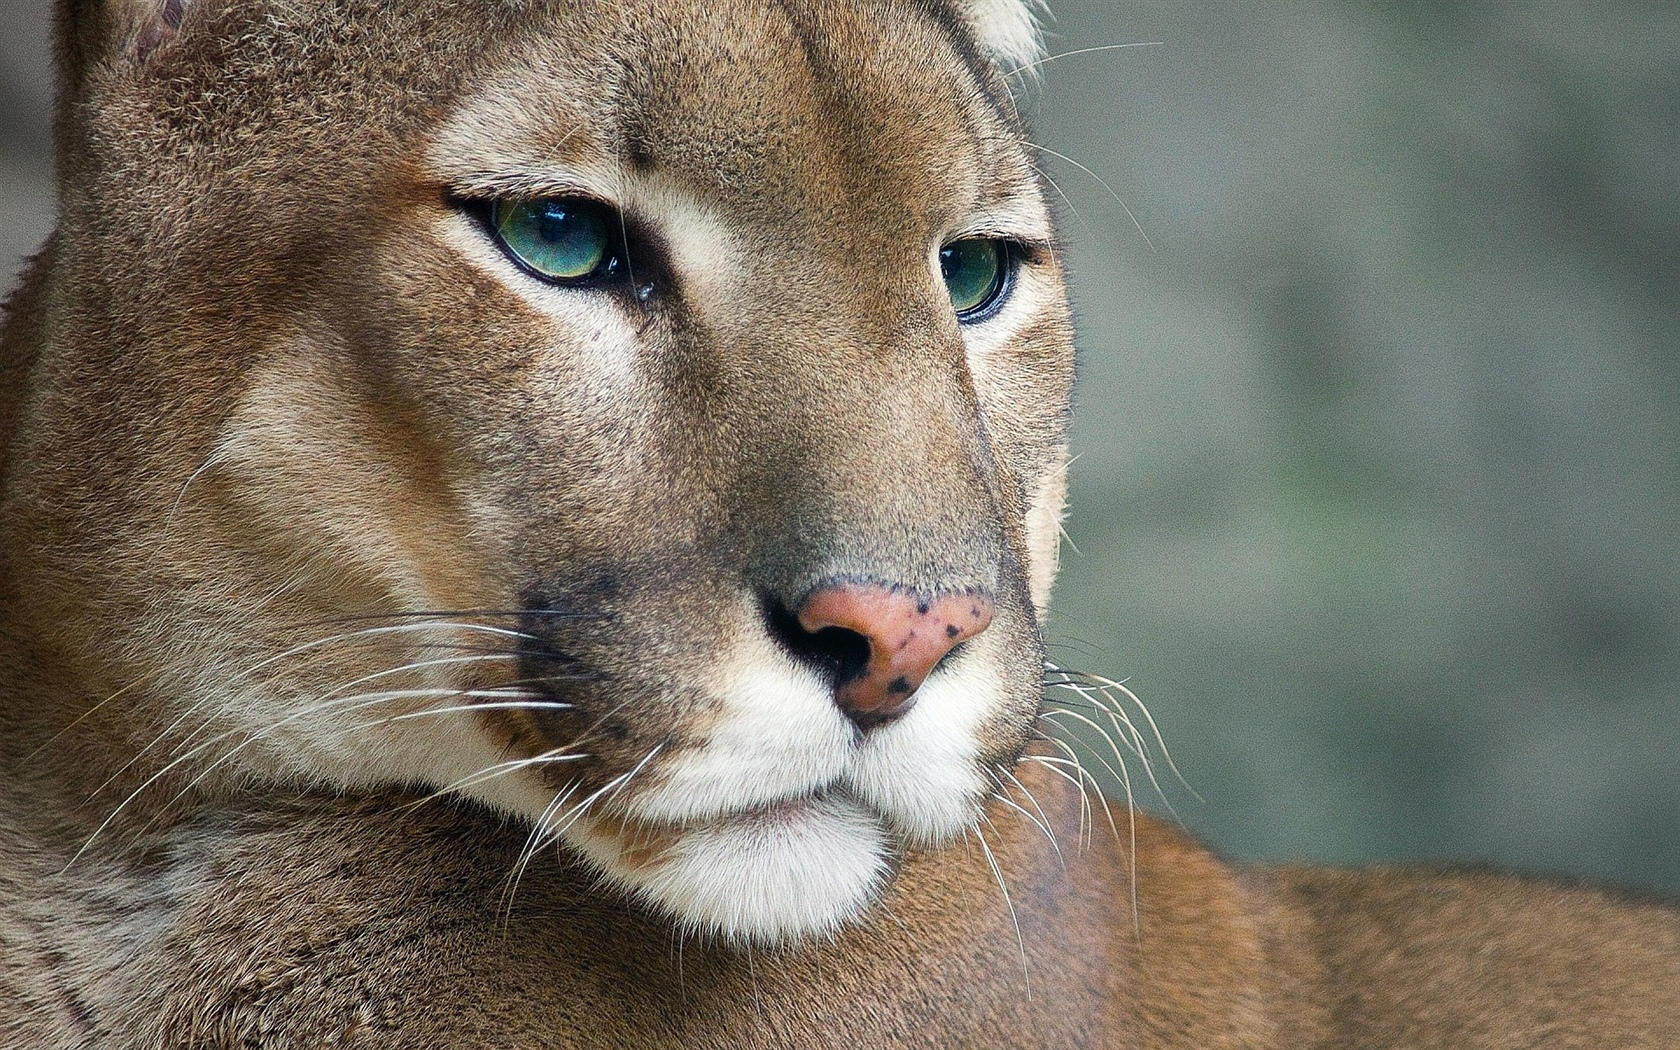 Cougar, wildlife, face 1680x1050 wallpaper